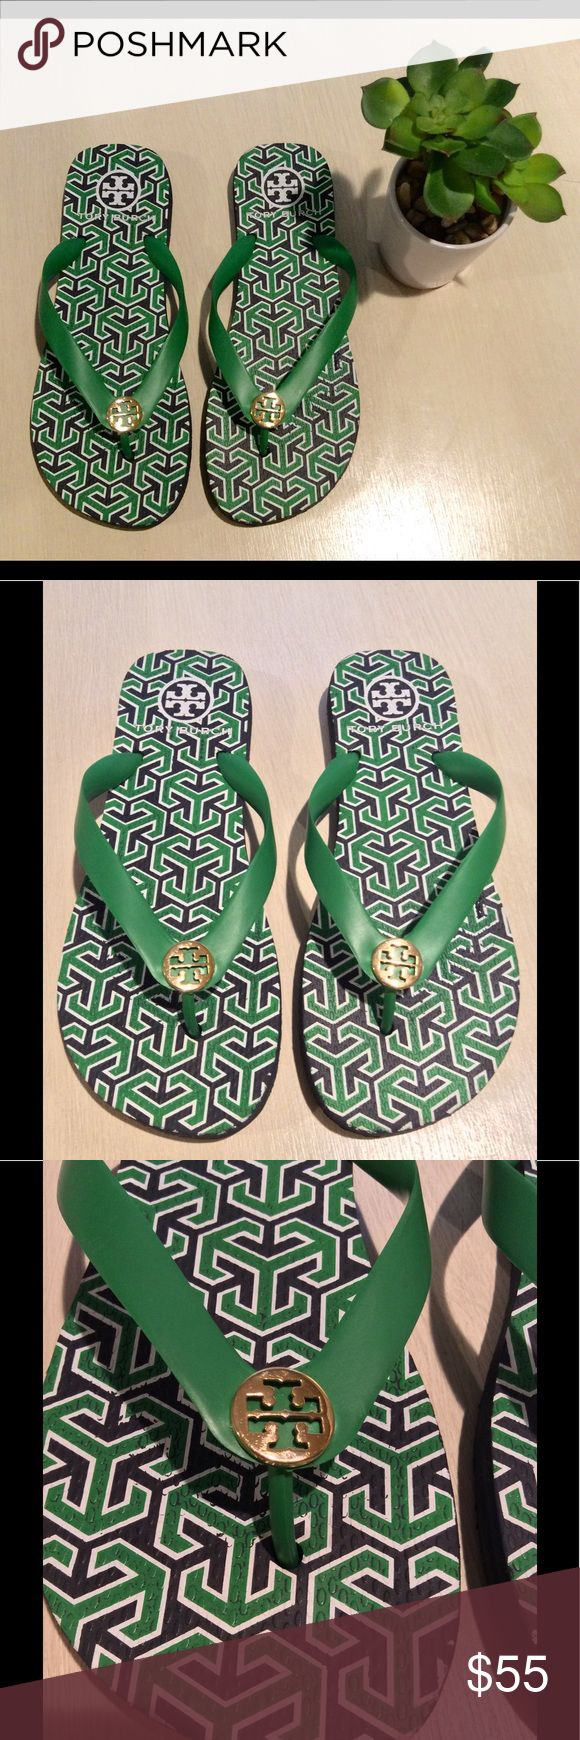 Tory Burch Green Flip Flops Worn once, authentic Tory Burch flip flops, green, Navy and white with Gold emblem, like new, size 6, but could fit up to size 7 Tory Burch Shoes Sandals